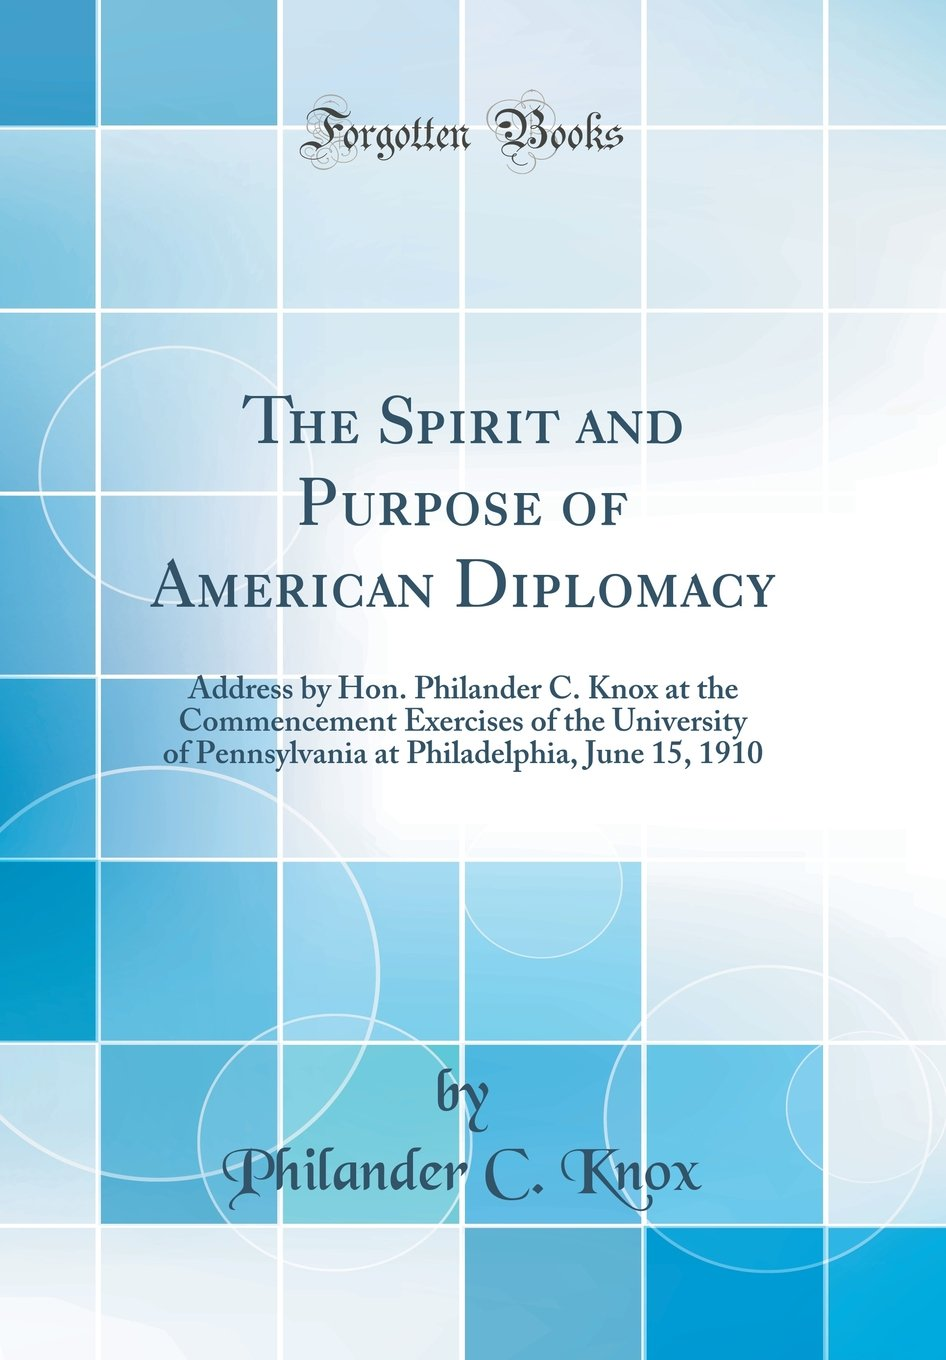 The Spirit and Purpose of American Diplomacy: Address by Hon